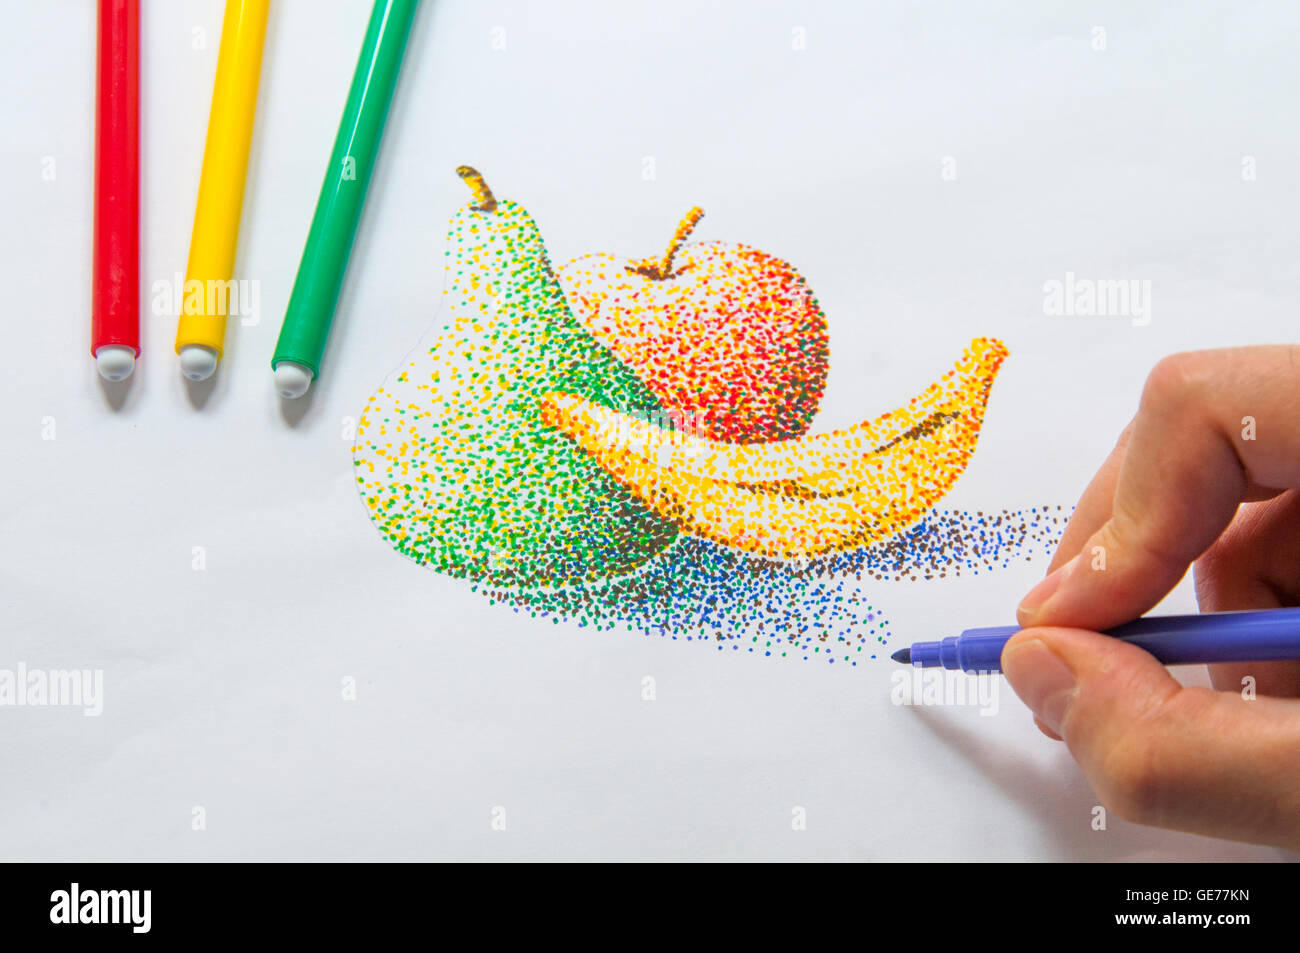 Man's hand drawing a still life using color markers. Pointillism technique. - Stock Image